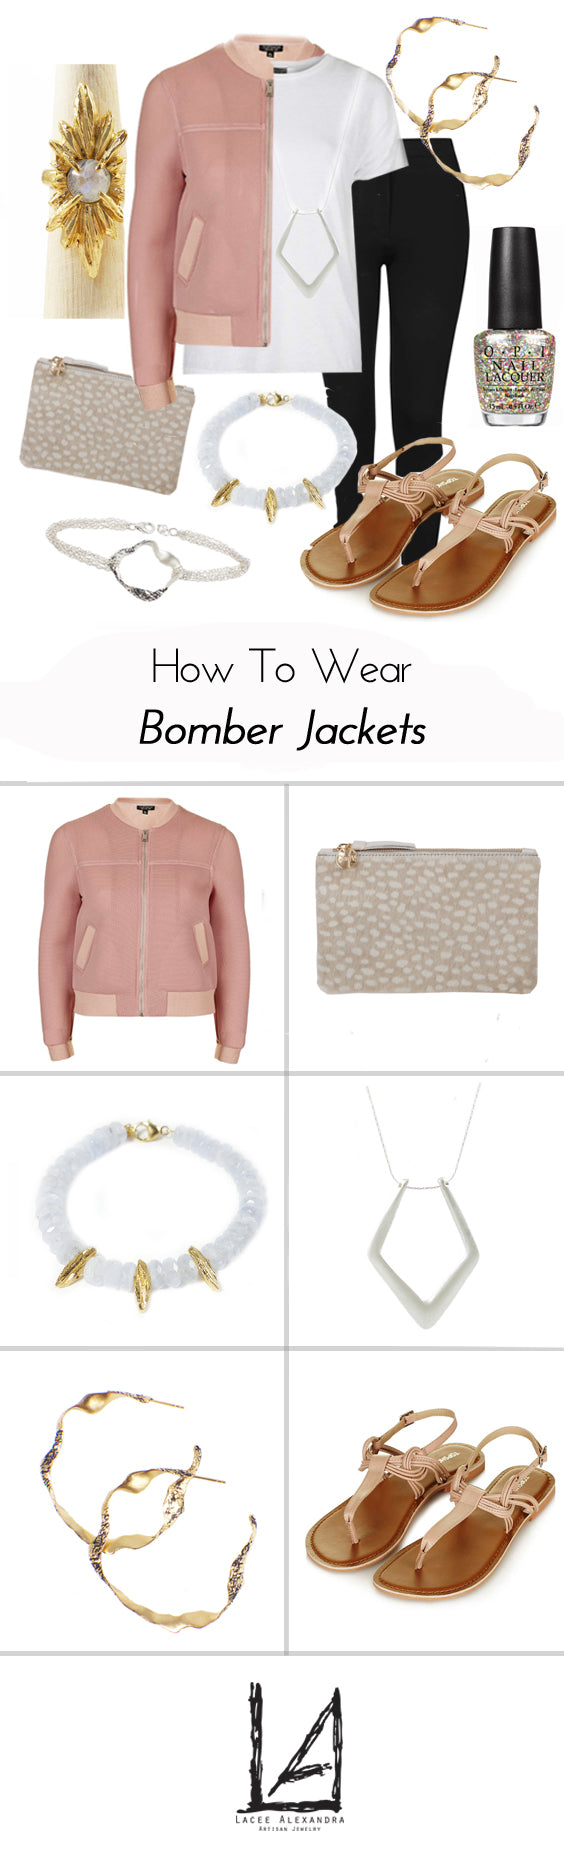 How To Wear Bomber Jackets with Lacee Alexandra, click for details!